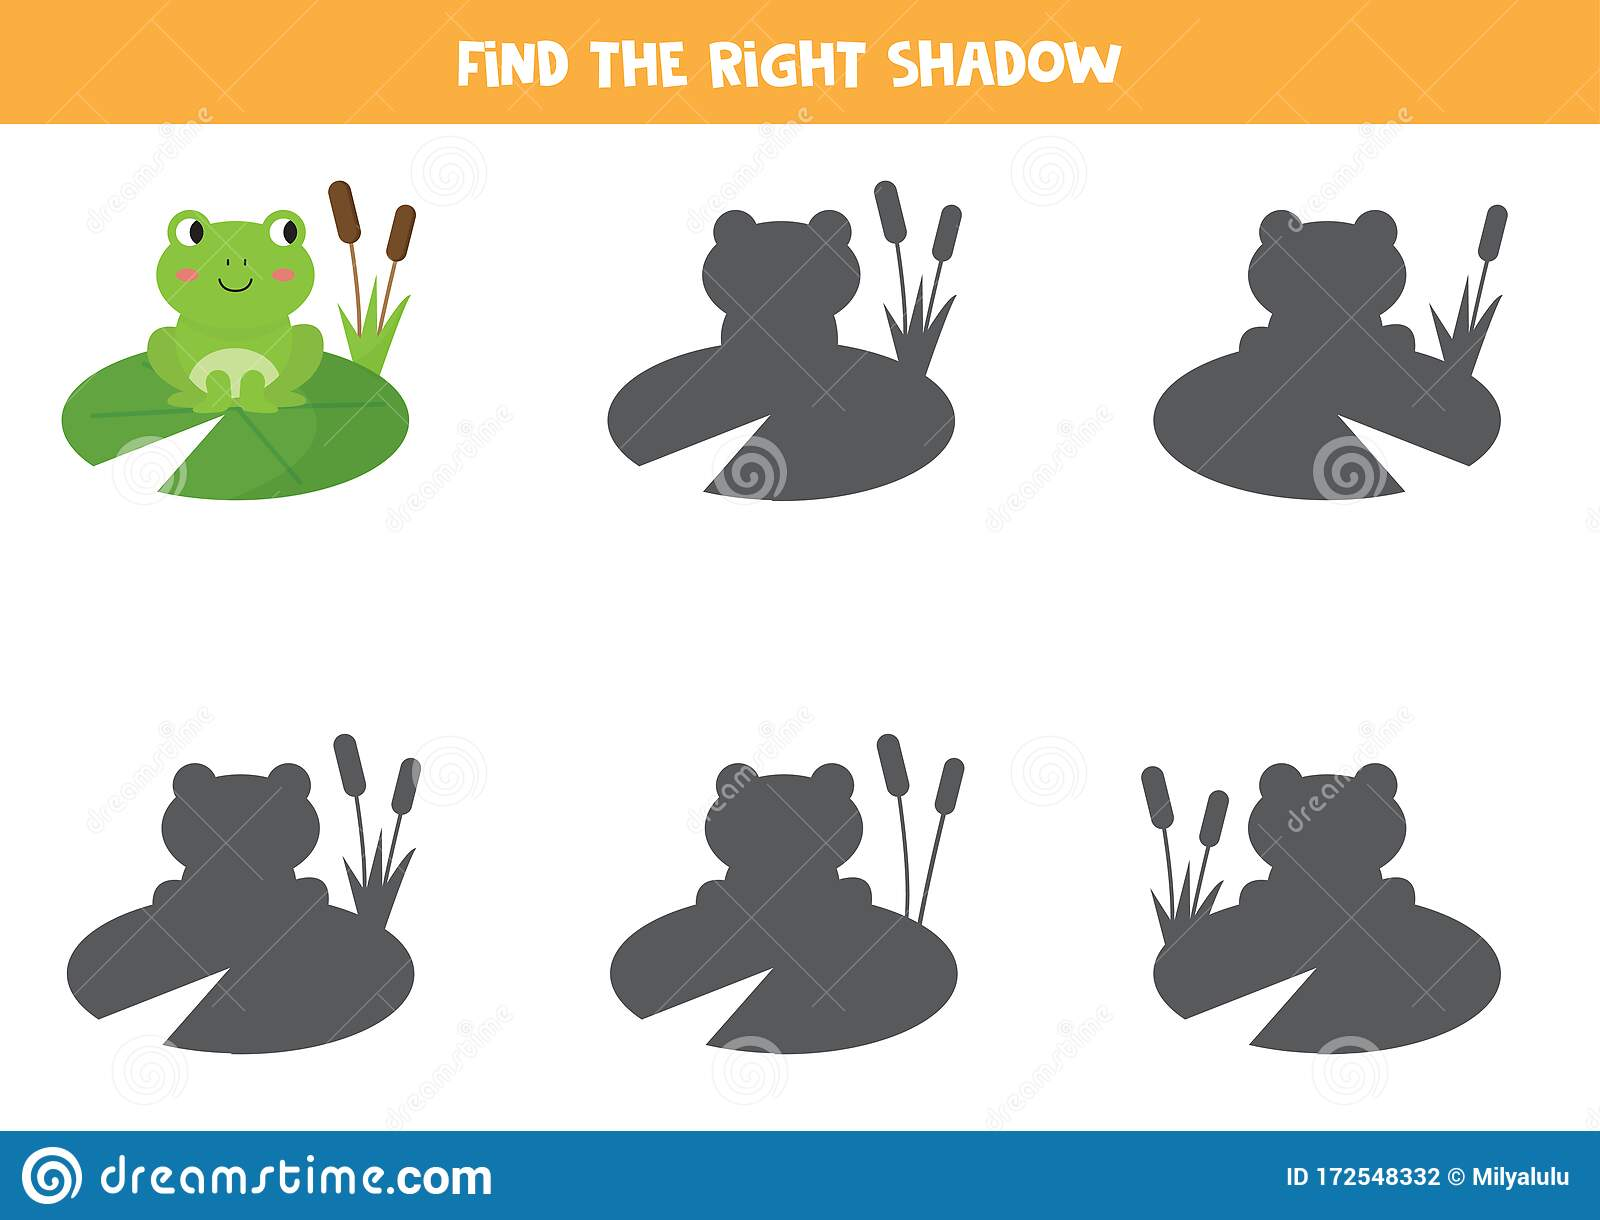 Find The Right Shadow Of Green Frog Logical Game For Kids